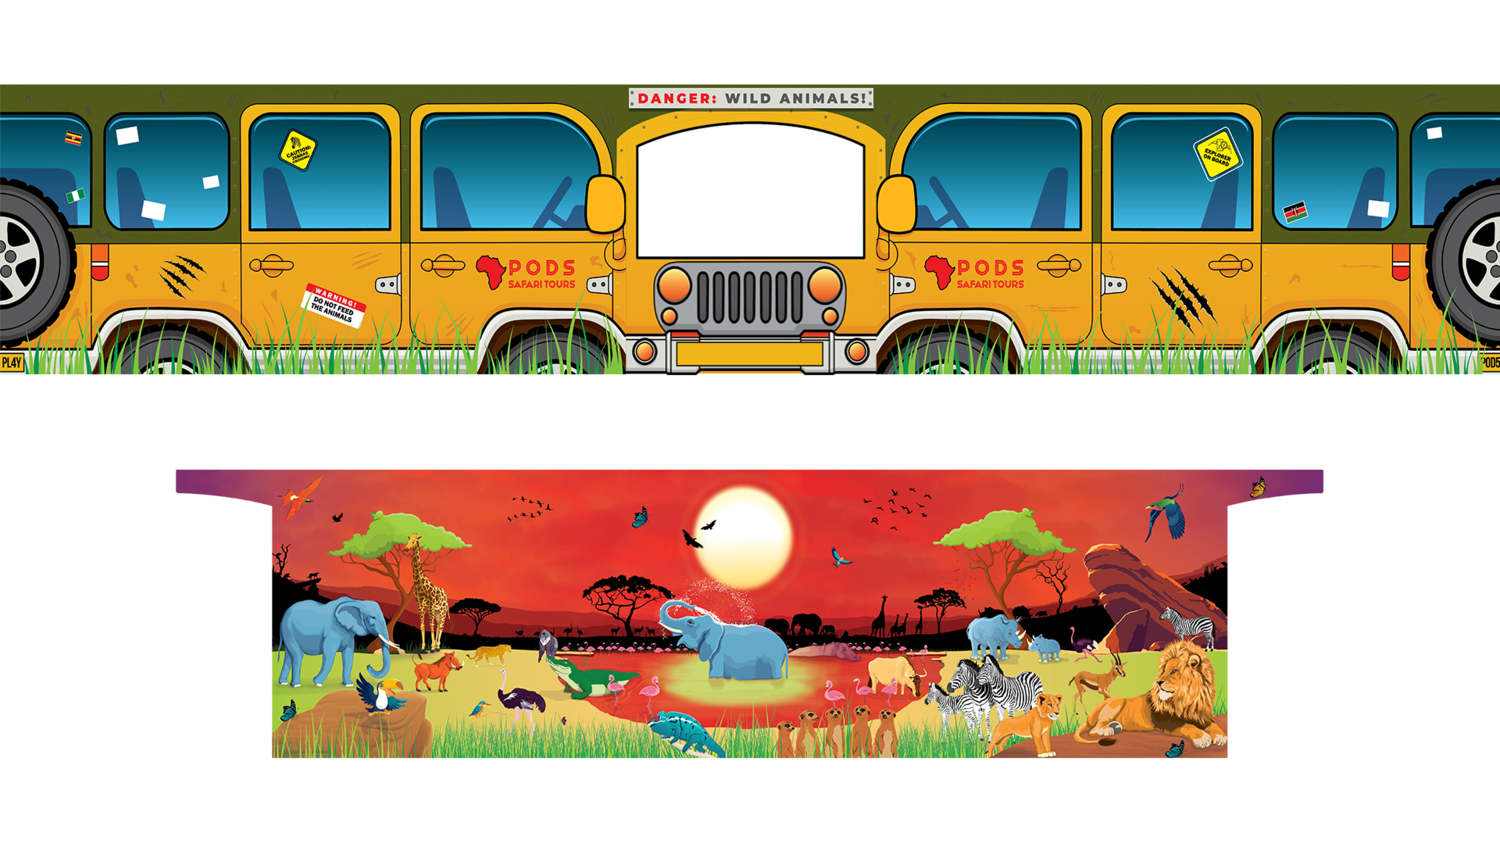 PRE ORDER - Removable Themes - Sunset Savanna Safari